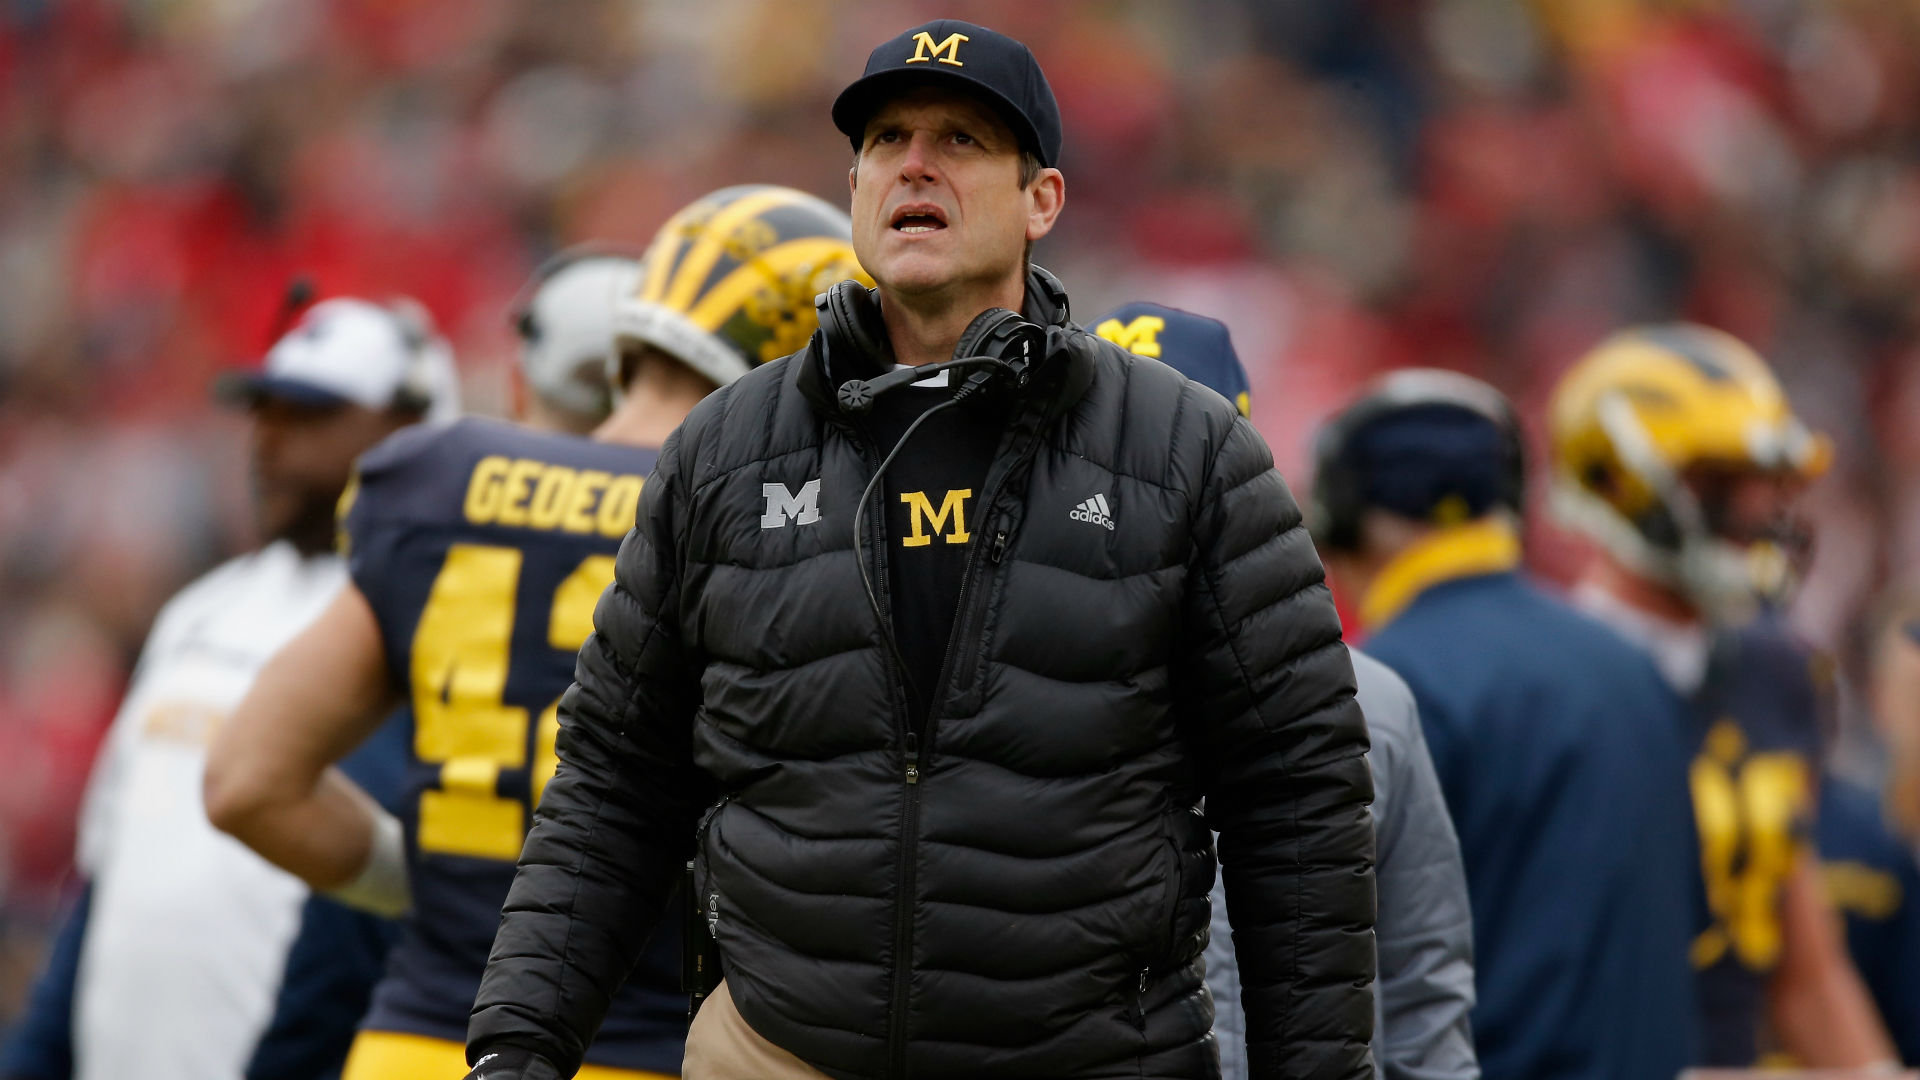 Jim-Harbaugh-112815-getty-ftr